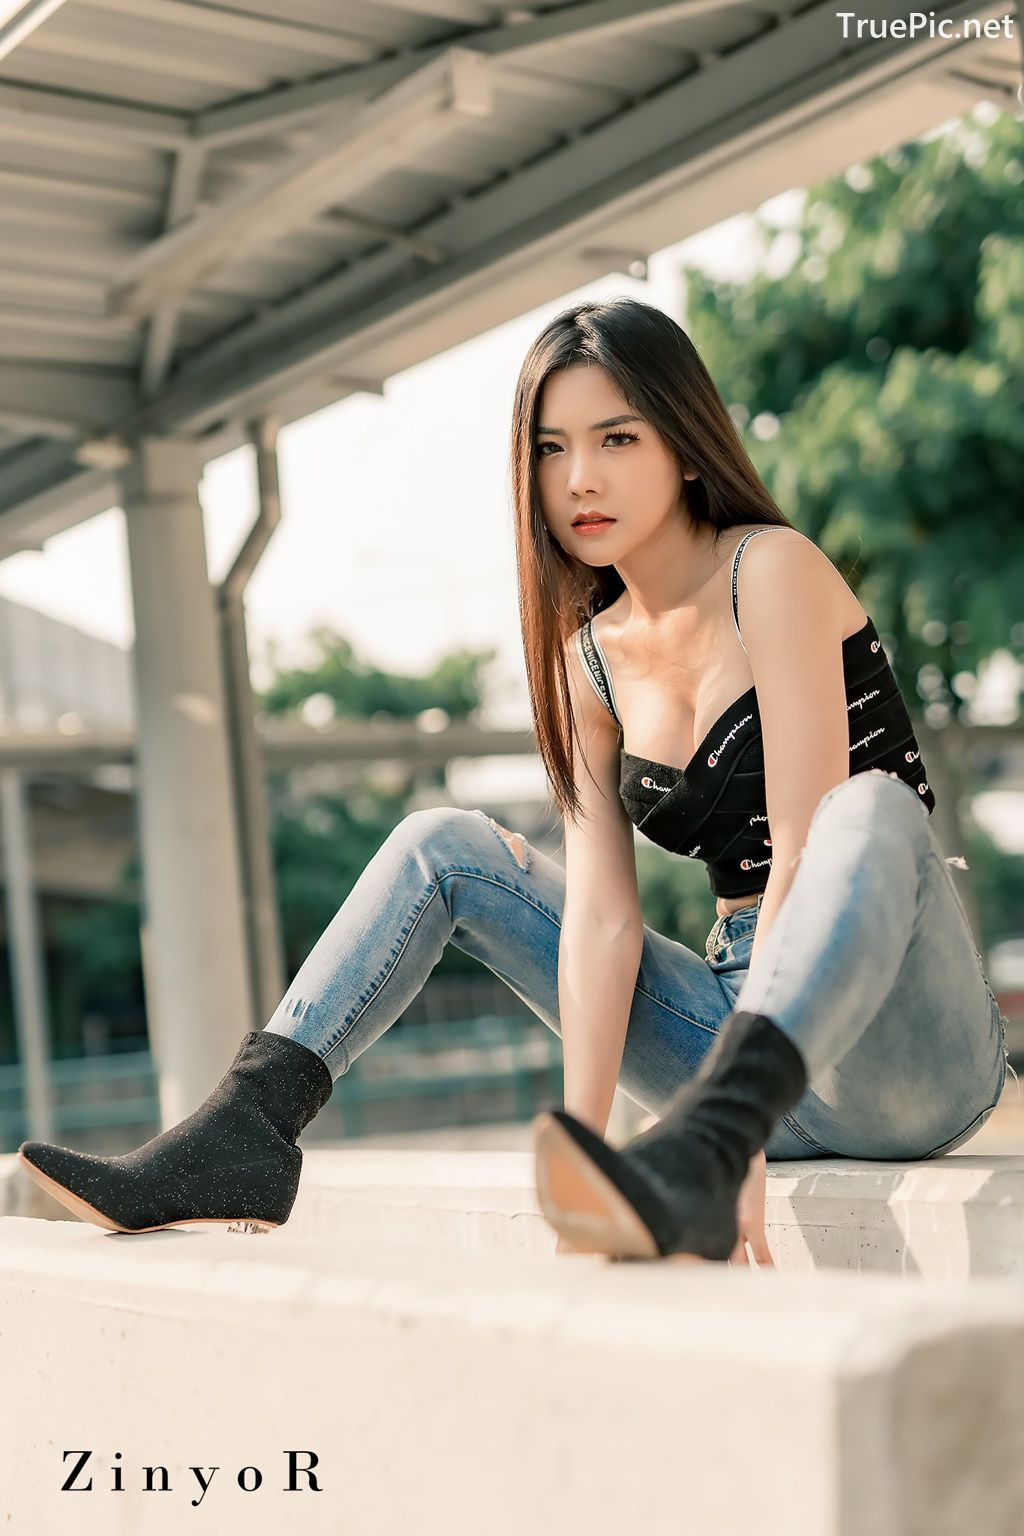 Image-Thailand-Model-Phitchamol-Srijantanet-Black-Crop-Top-and-Jean-TruePic.net- Picture-2